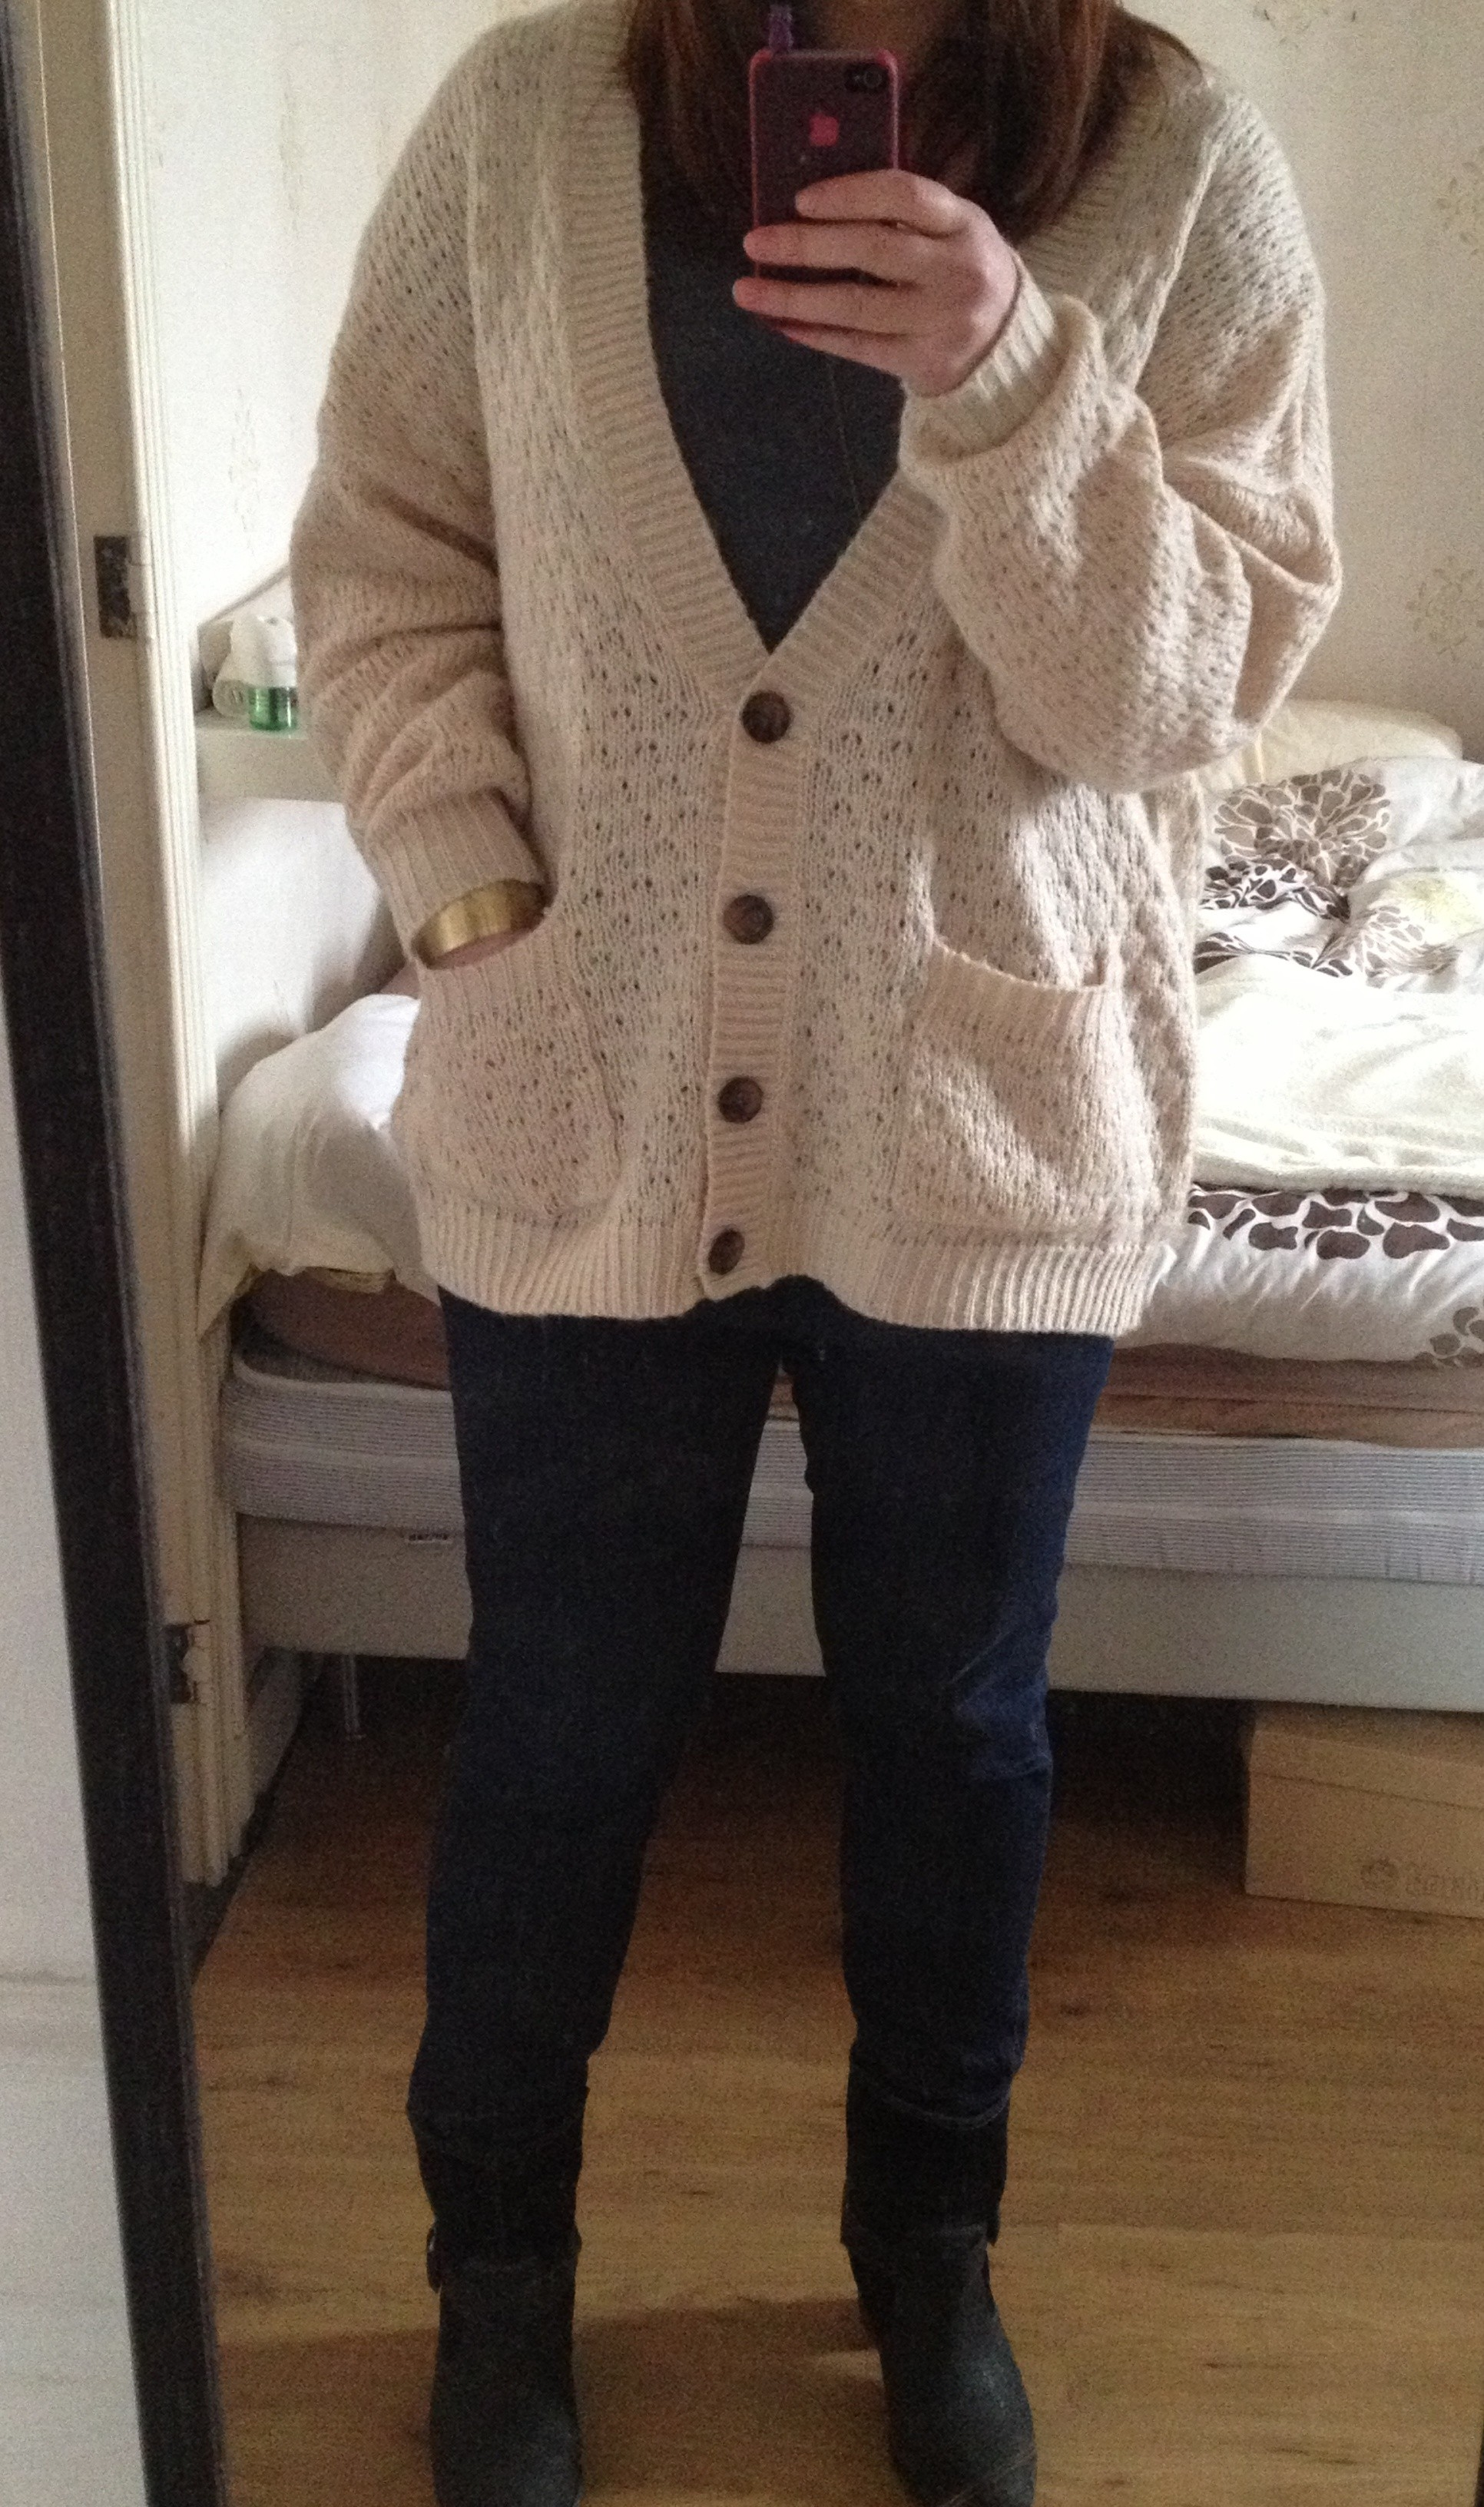 Jumper,vest from New Look, T,Shirt HM, Levis jeans, Boots